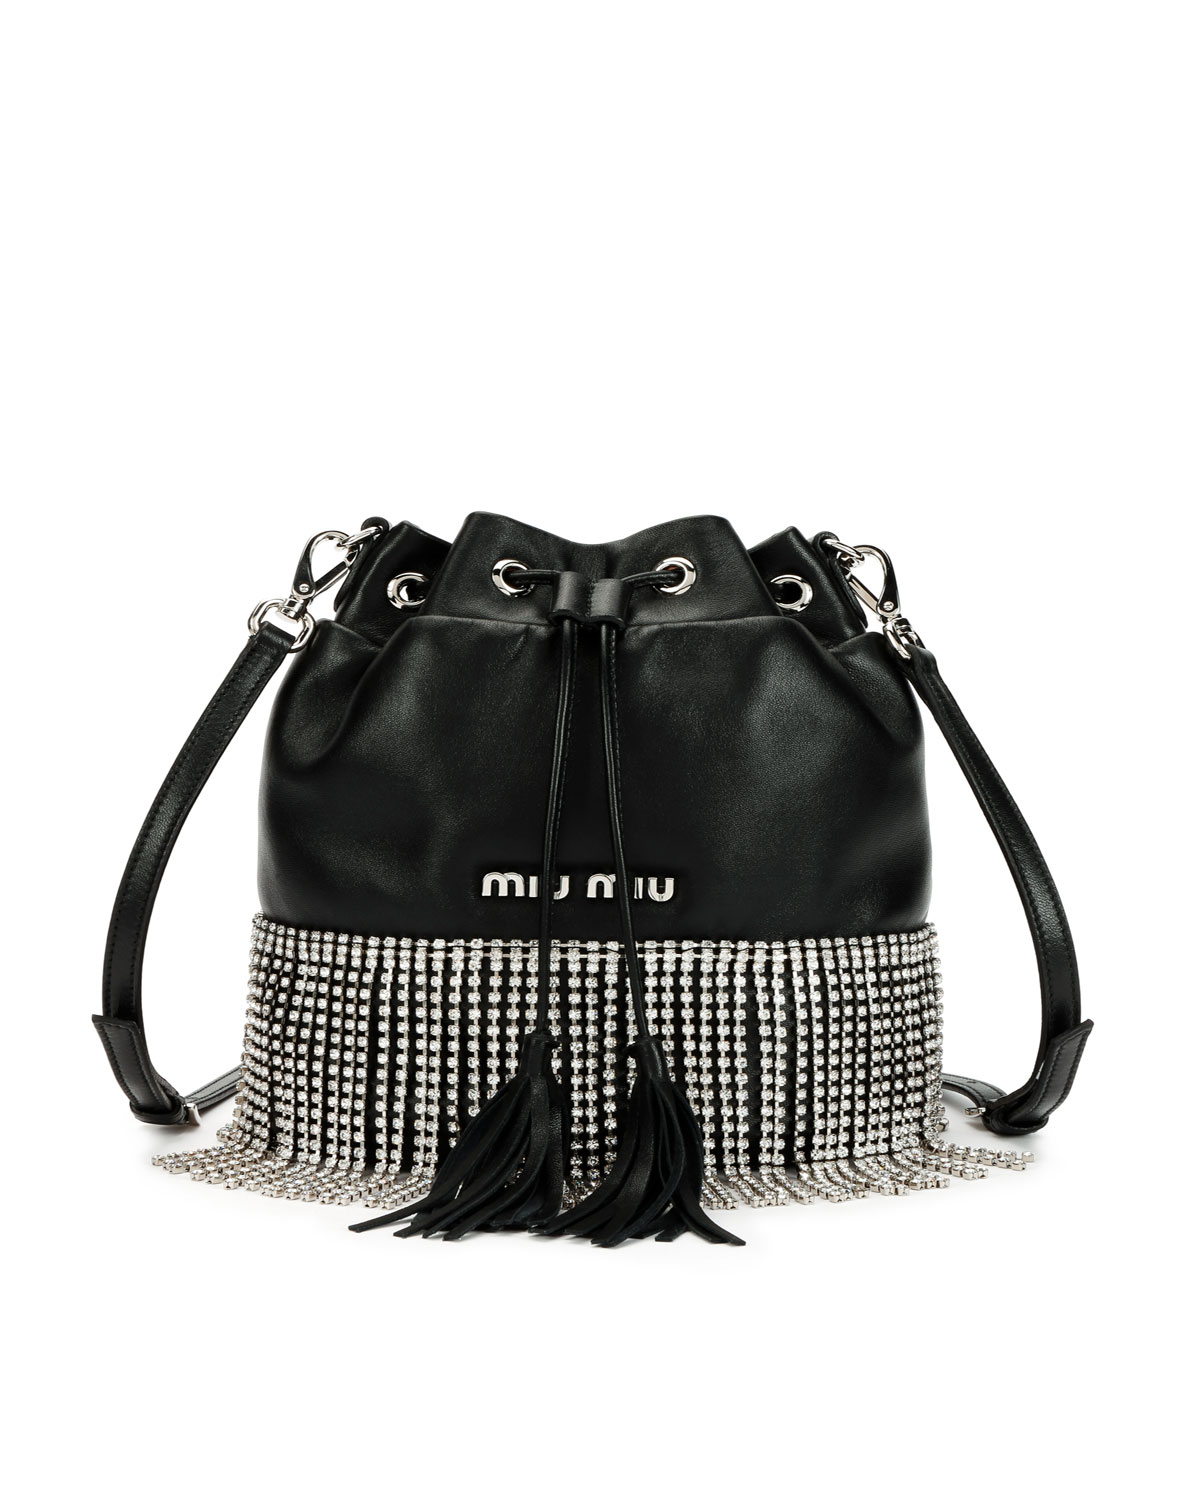 Miu Miu Small Crystal Fringe Napa Drawstring Bucket Bag  8df18854a5656